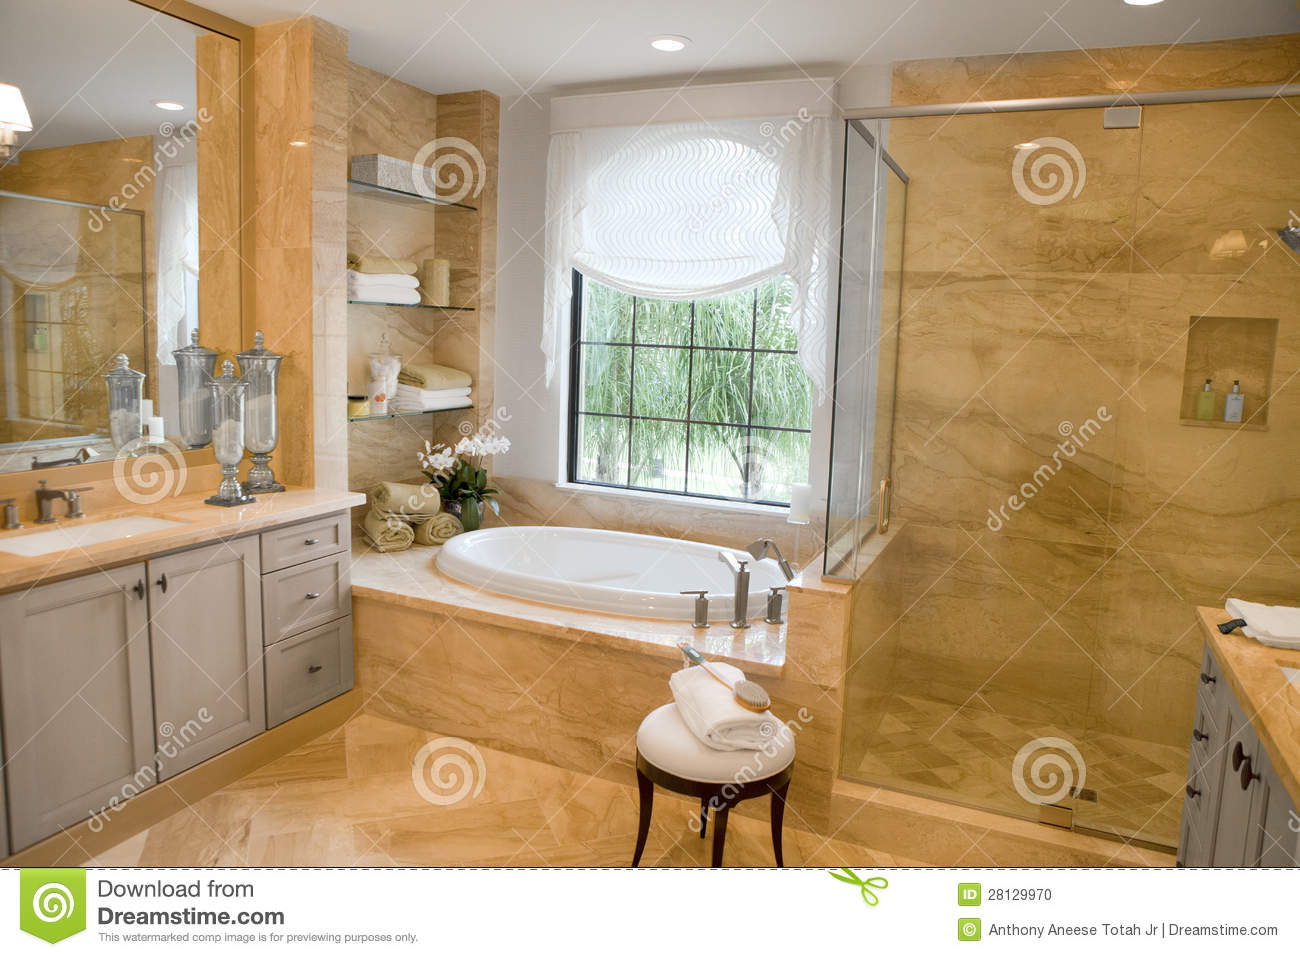 Large Upscale Master Bathroom Stock Photo - Image: 28129970